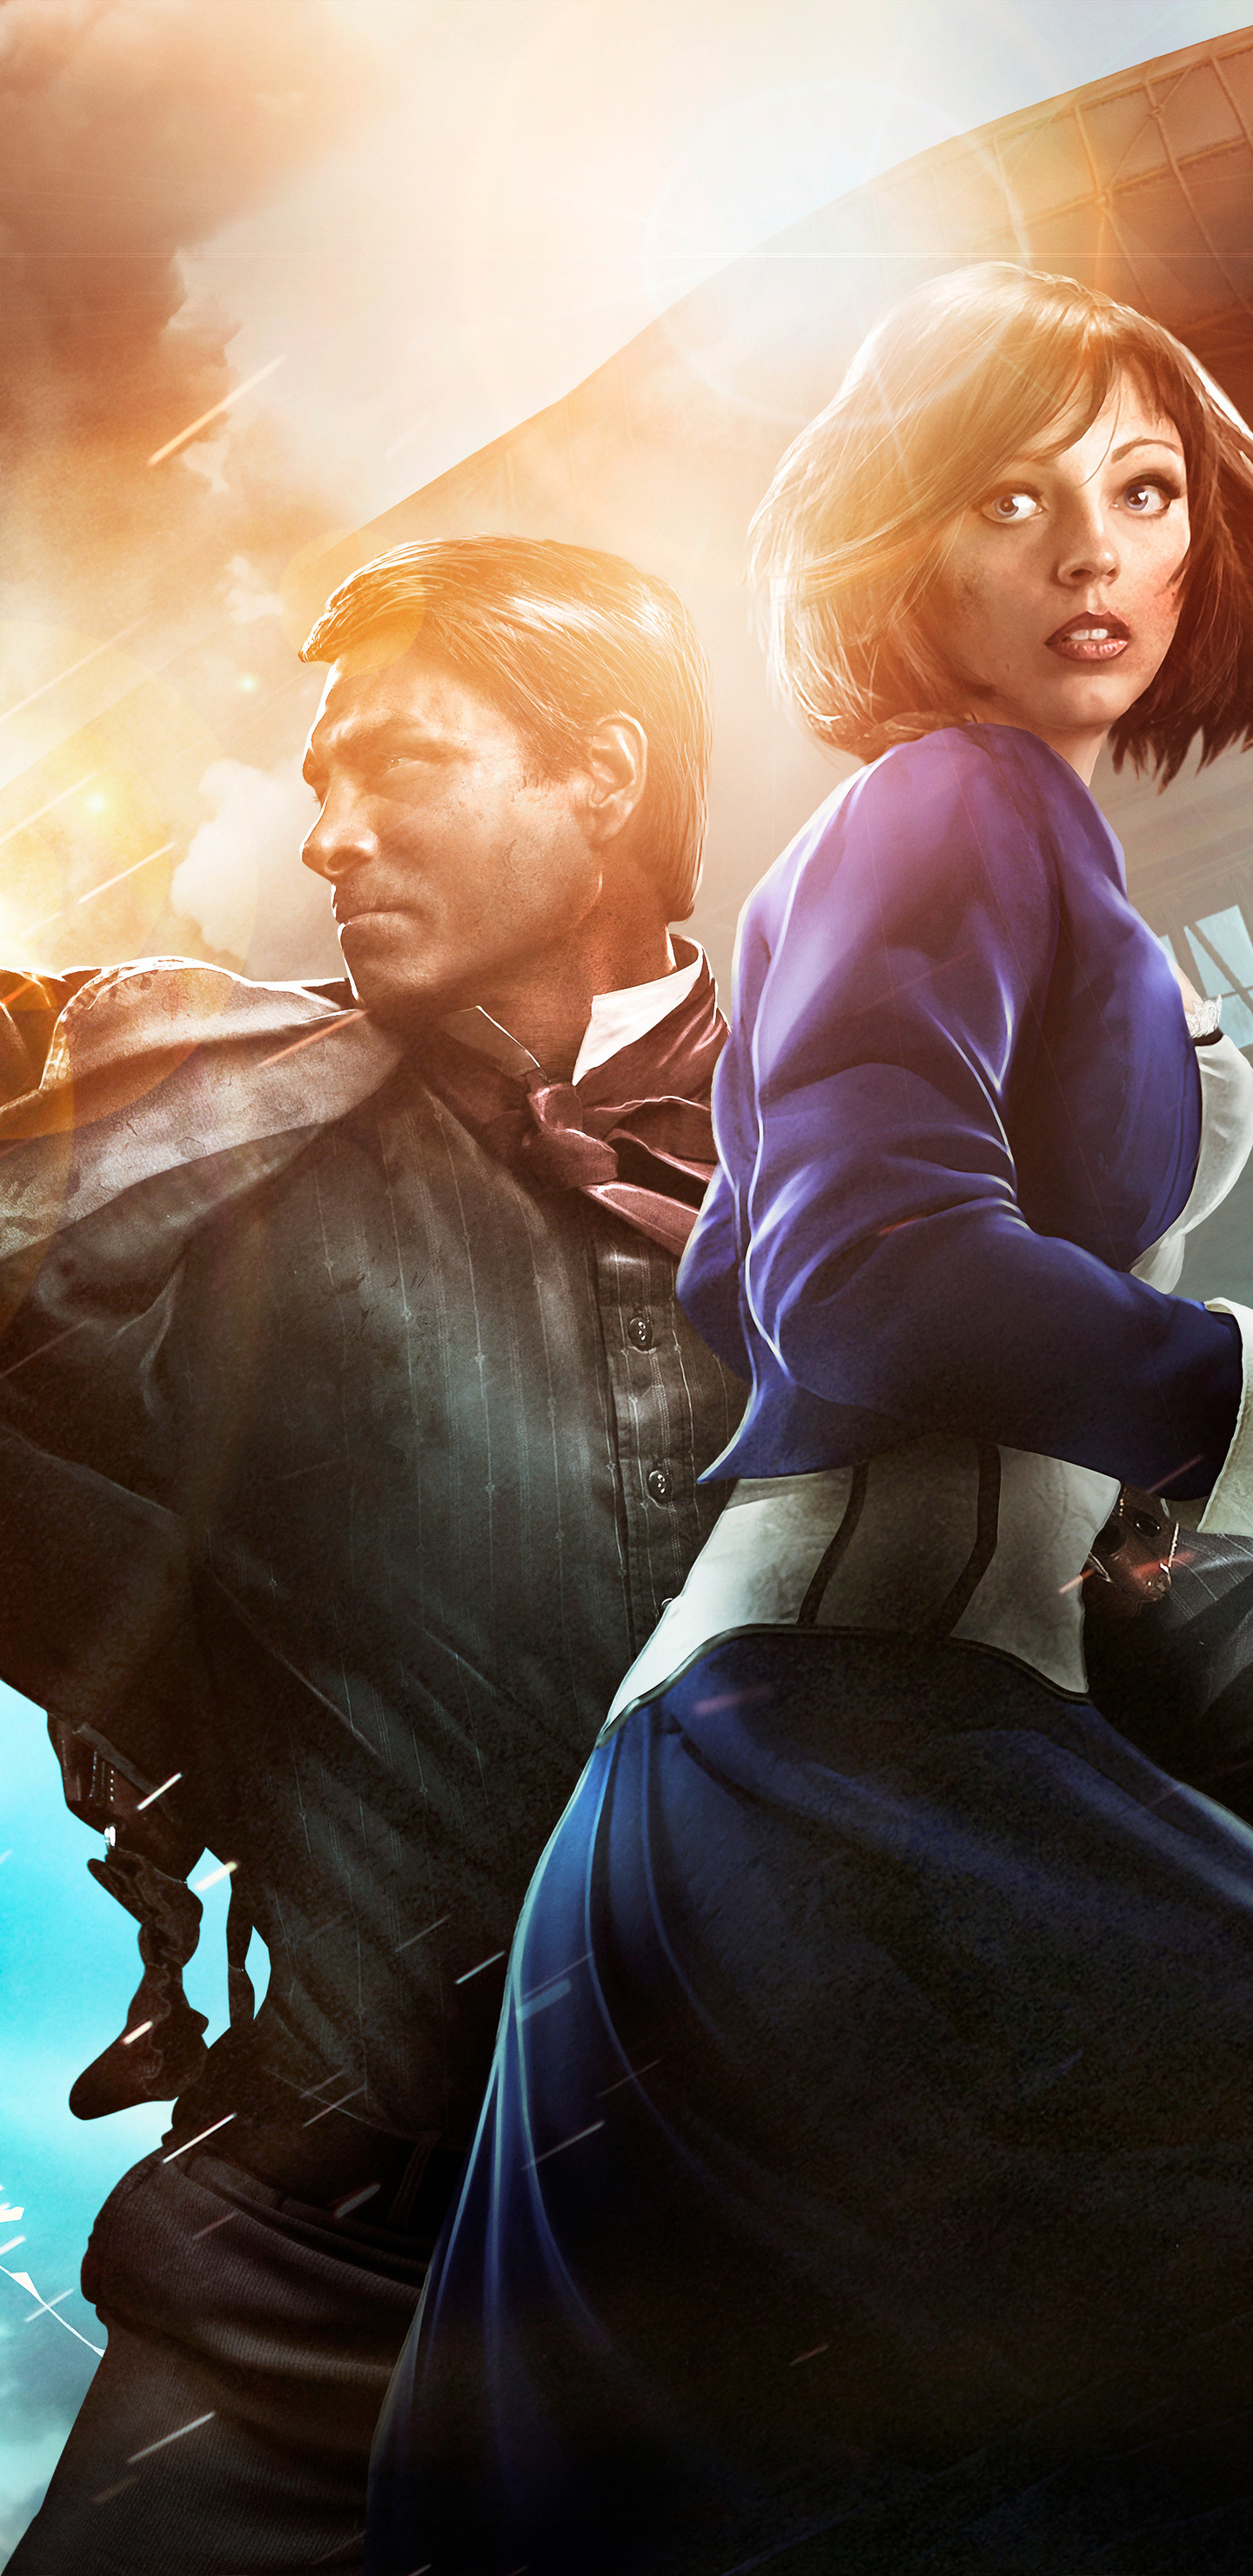 Bioshock Infinite Booker Dewitt And Elizabeth 8k F8